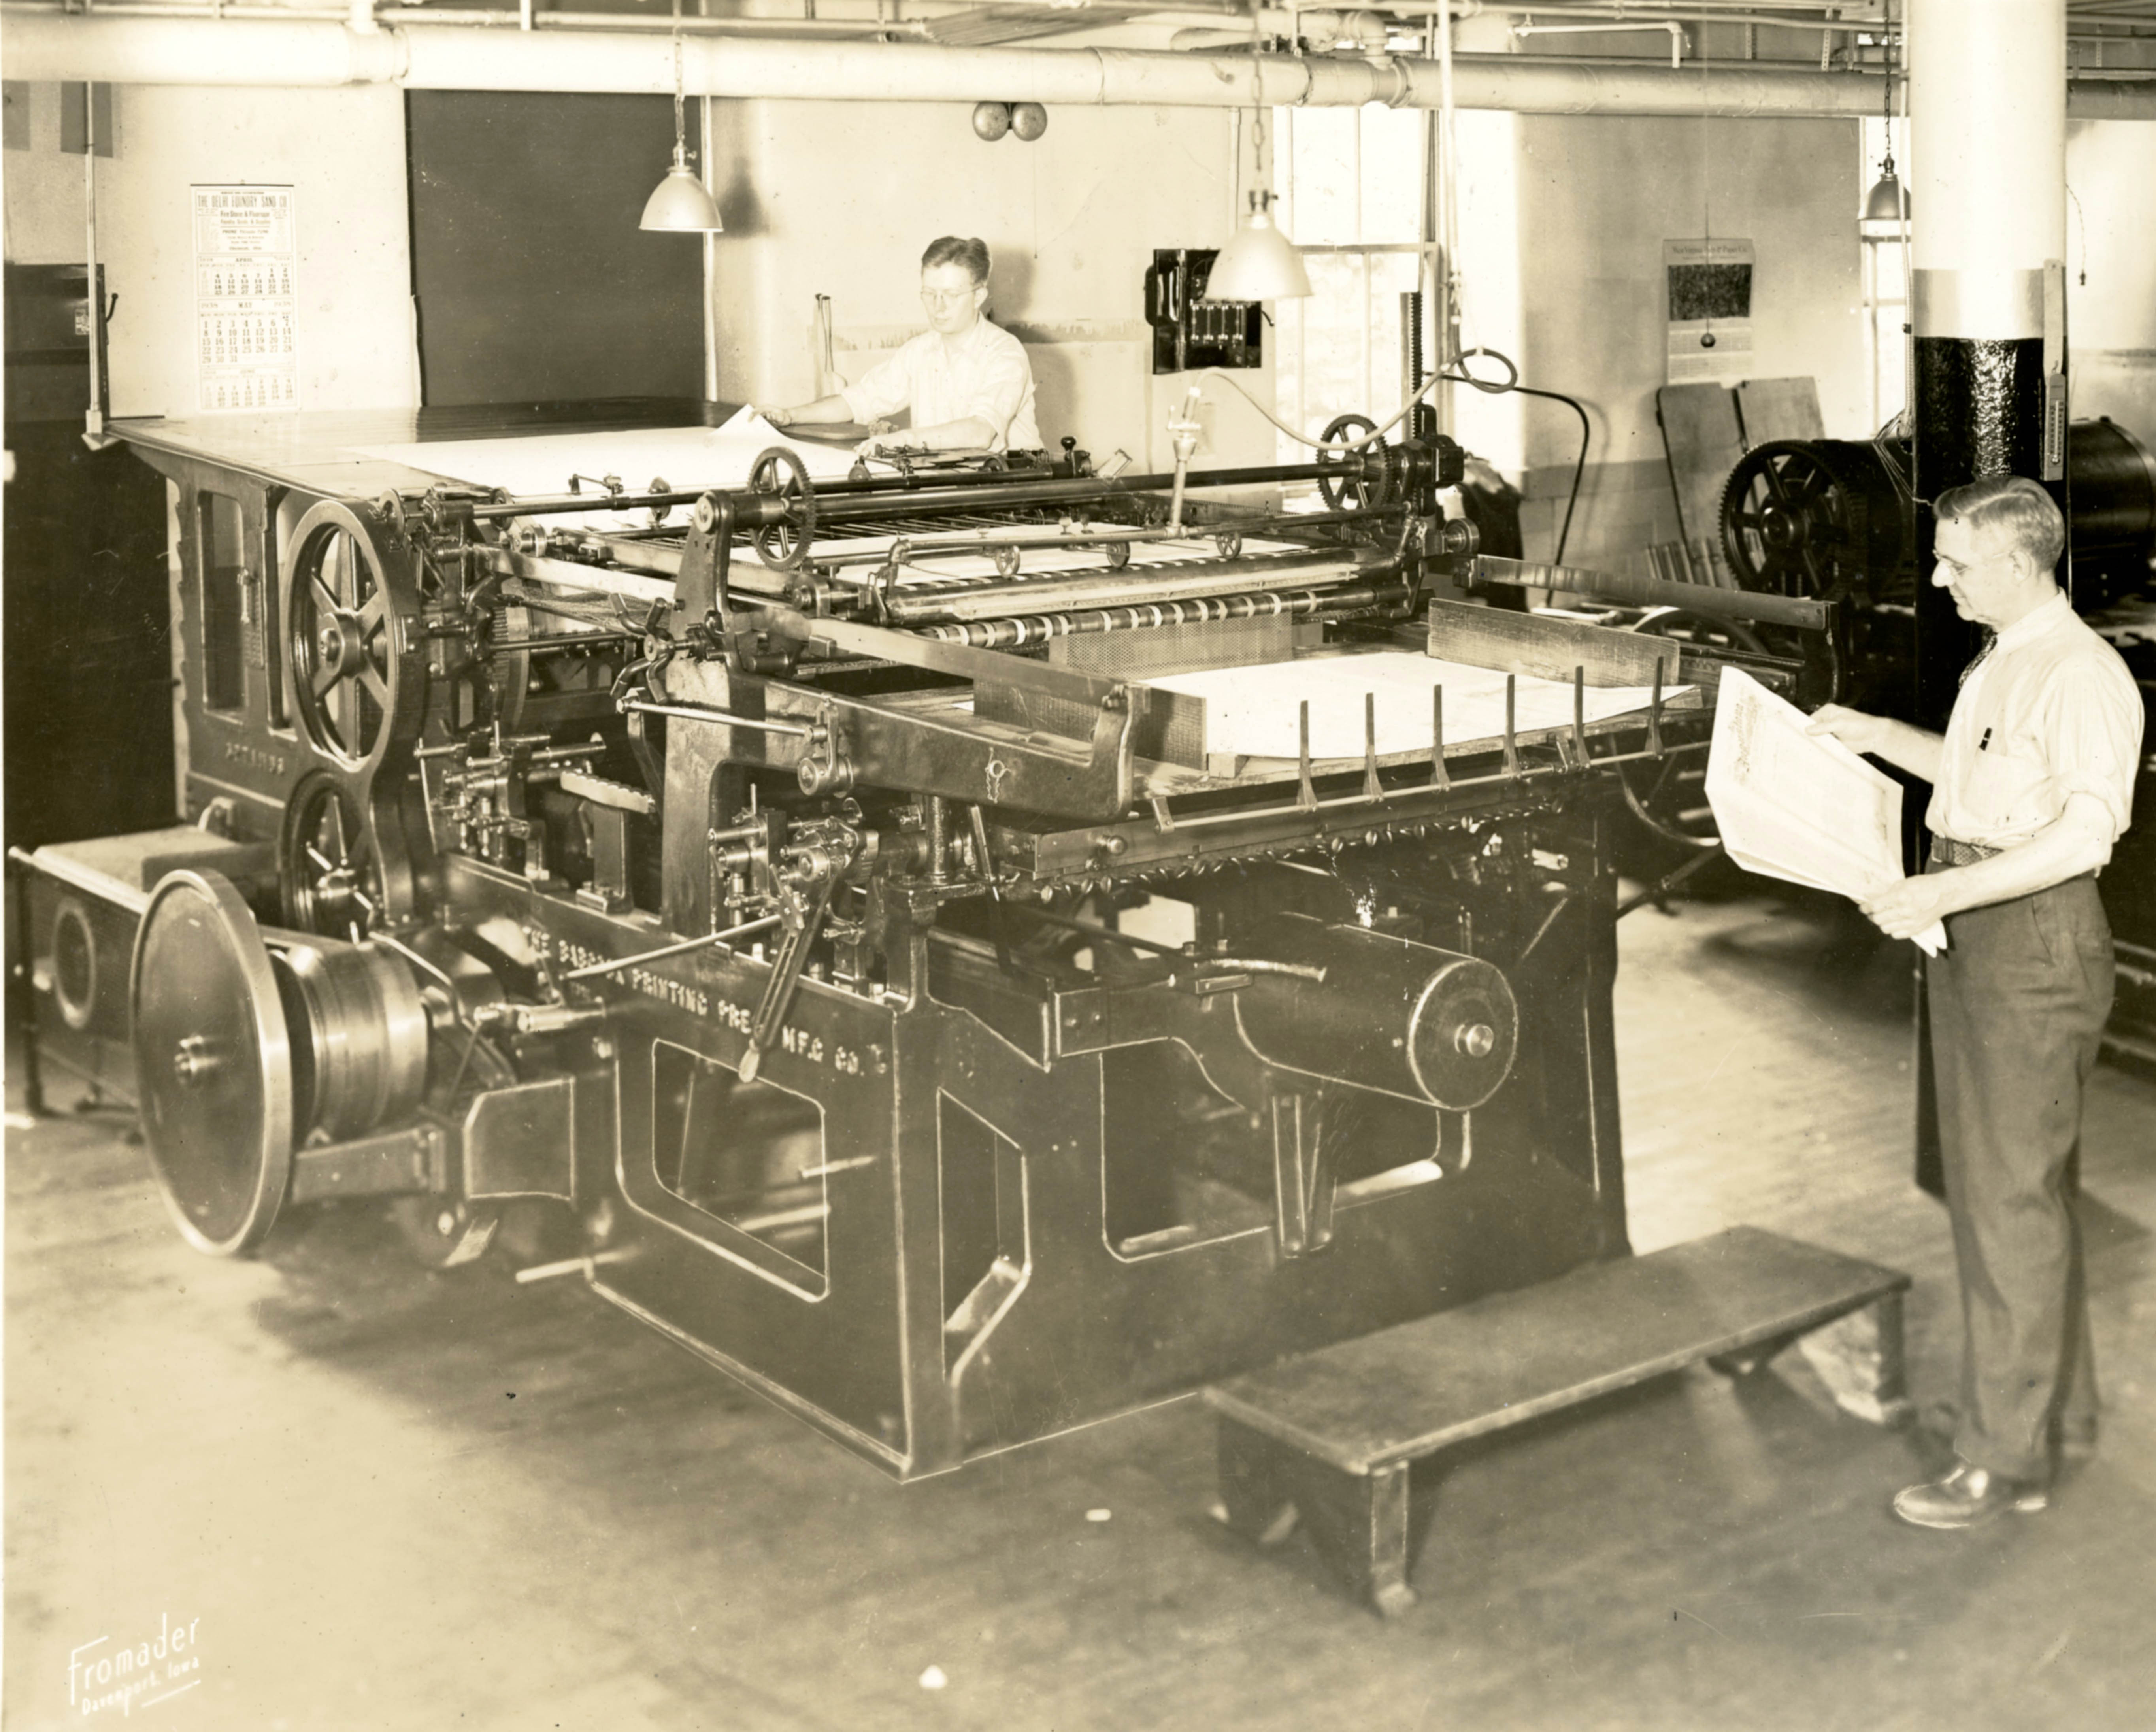 Printing Press at the Augustana Book Concern, late 1920s